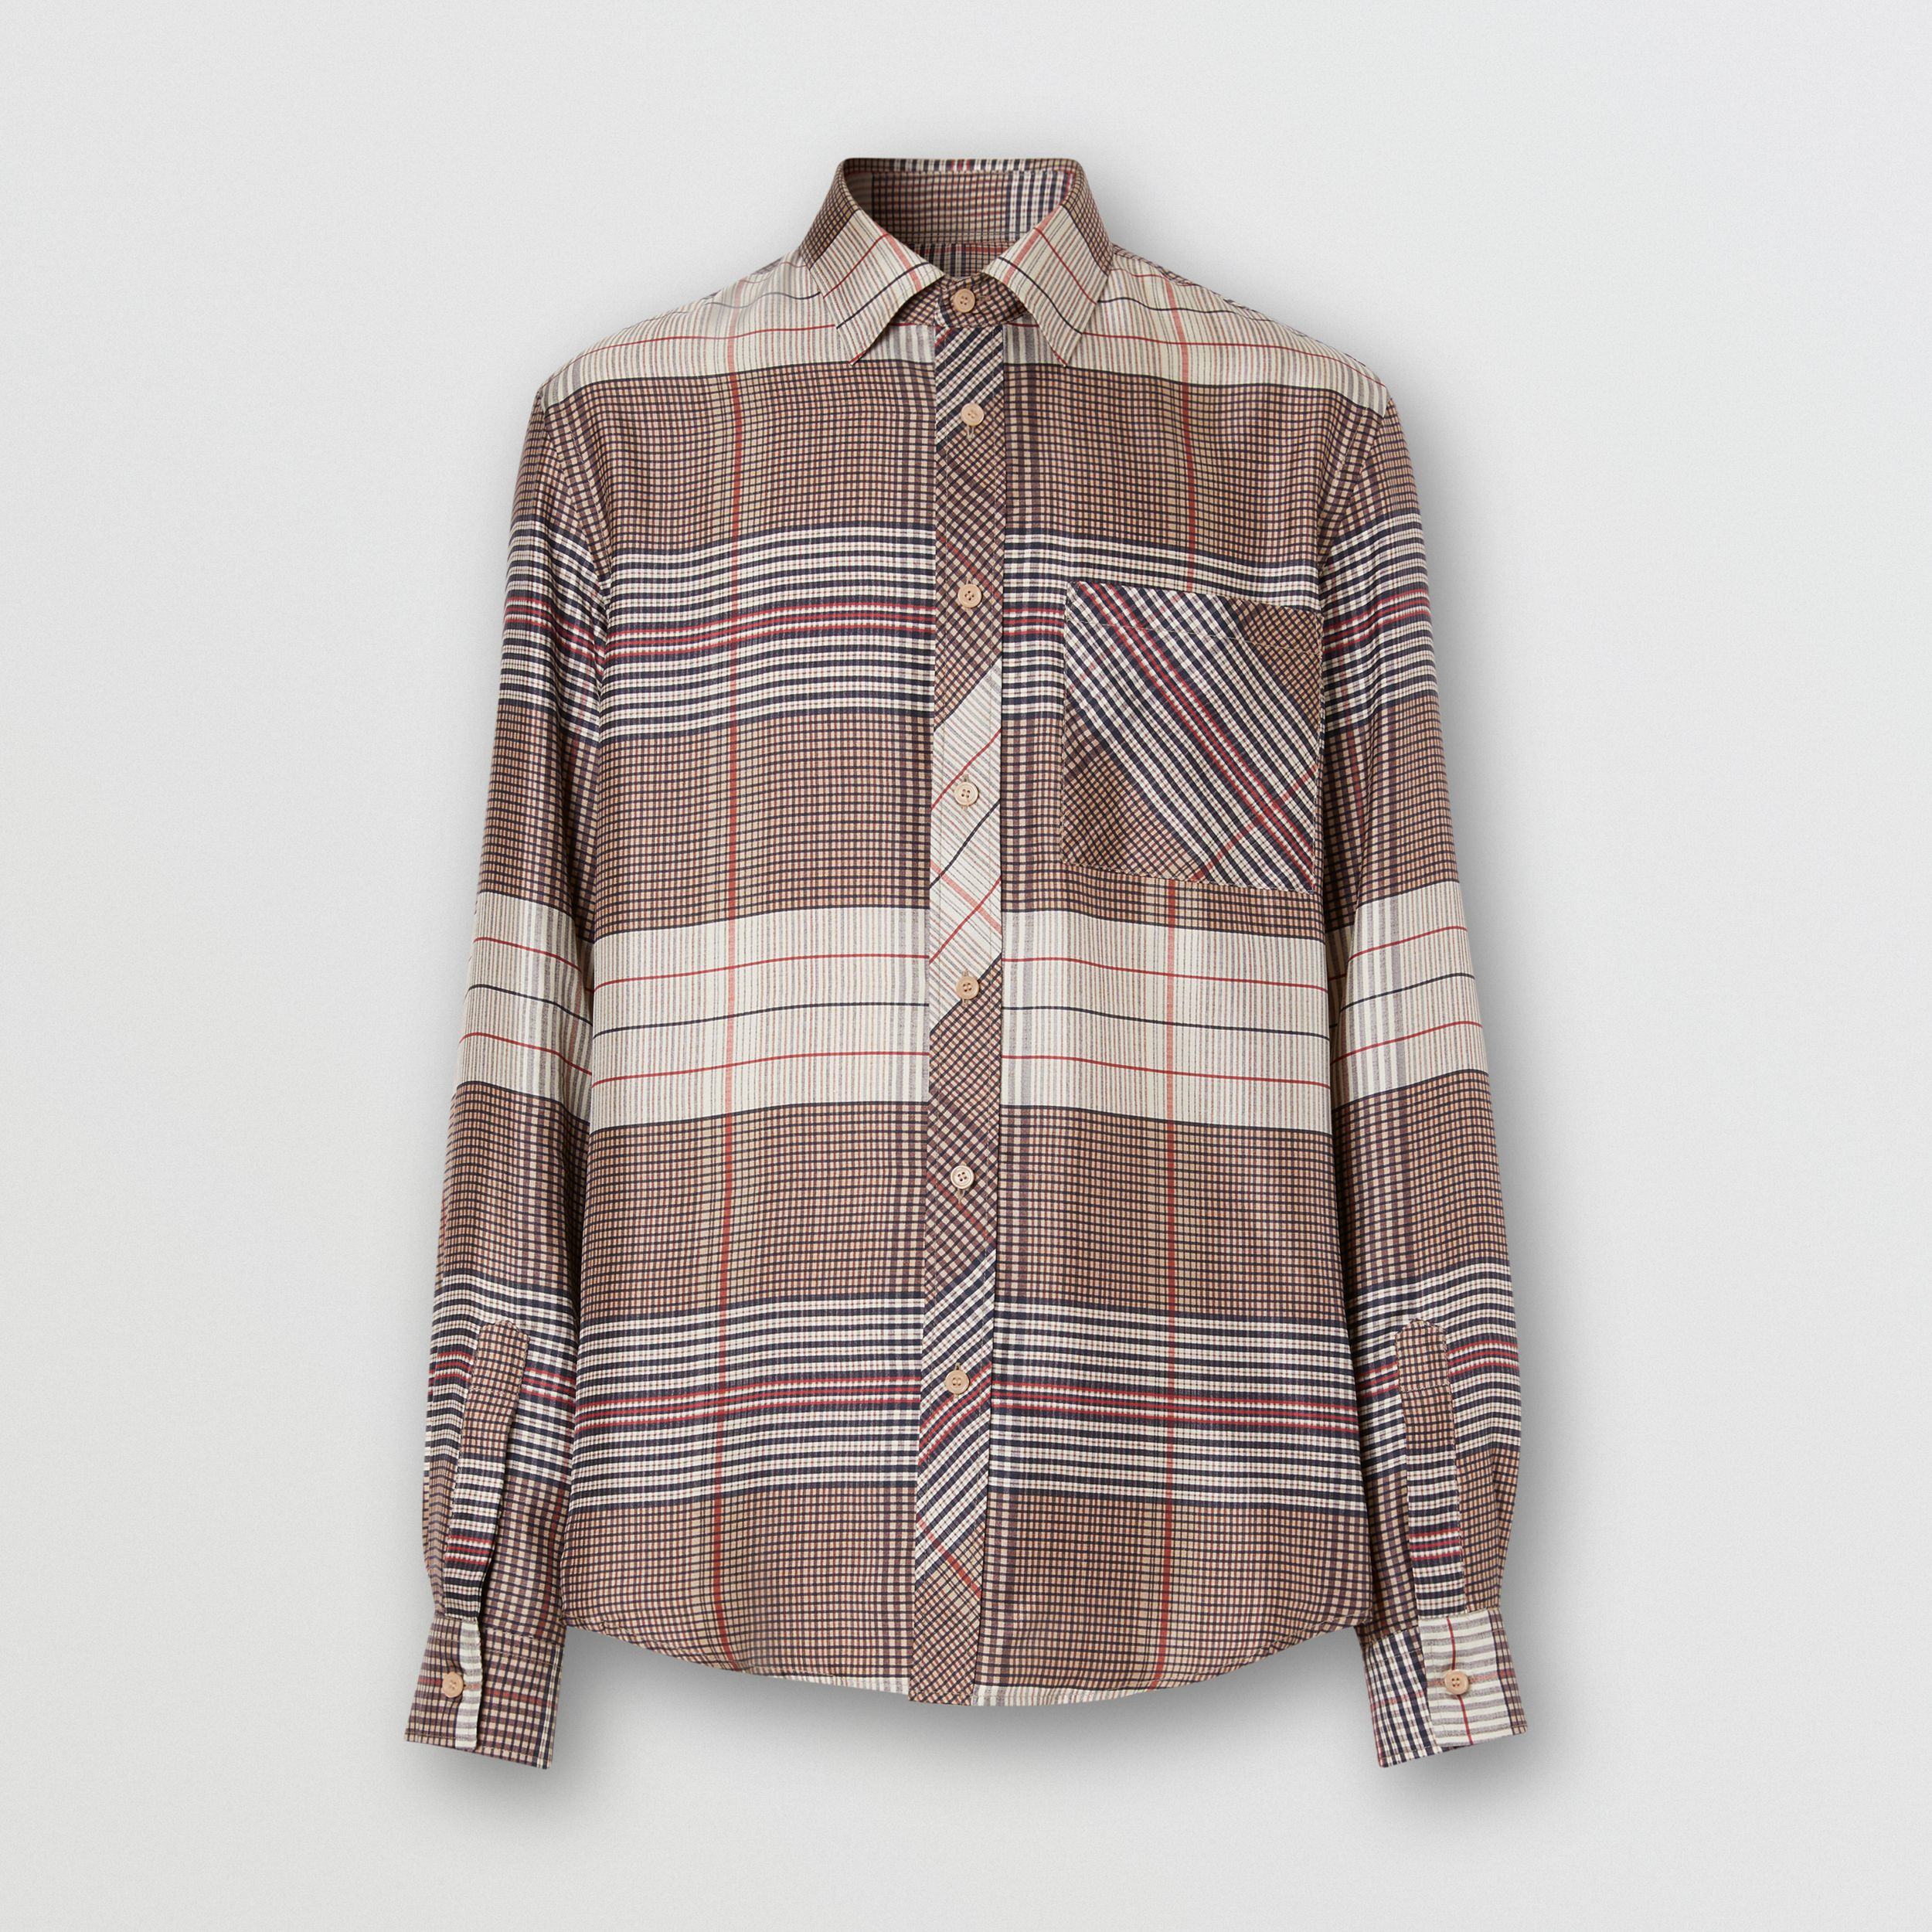 Classic Fit Contrast Check Silk Twill Shirt in Buttermilk - Men | Burberry - 4